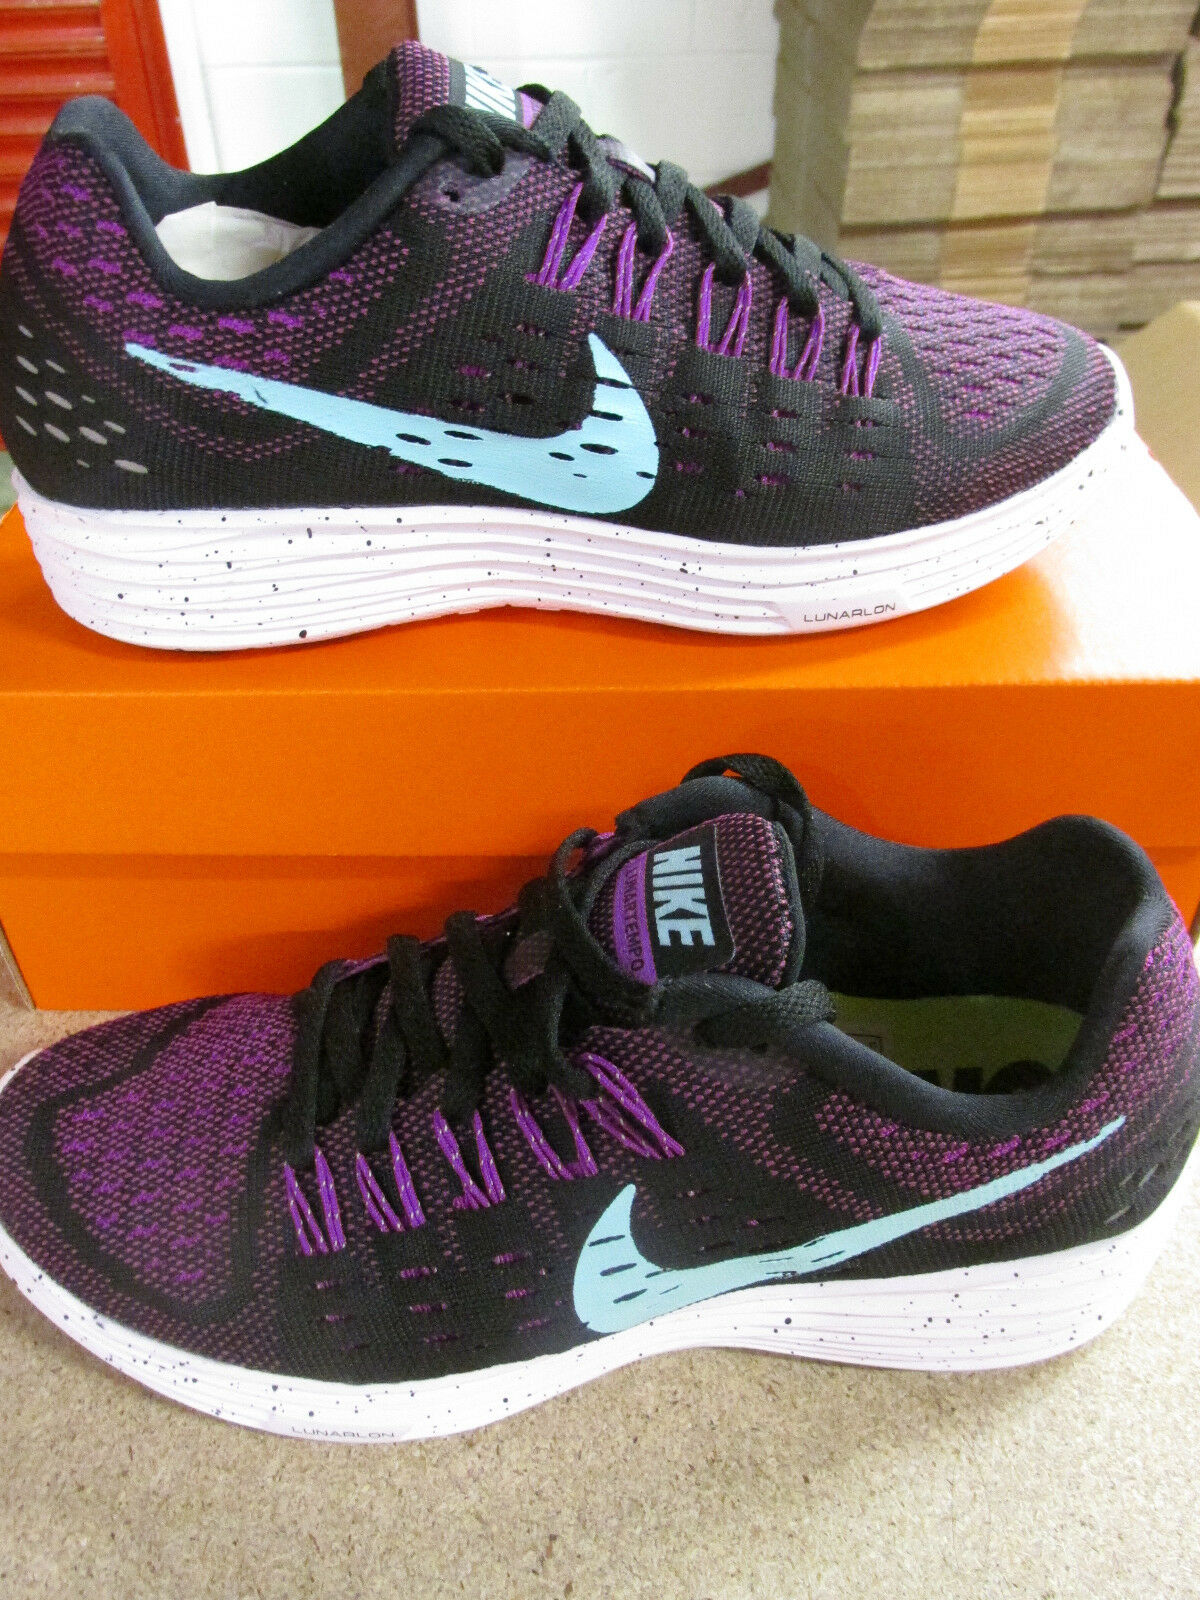 nike 705462 lunartempo womens running trainers 705462 nike 504 sneakers shoes d2450c